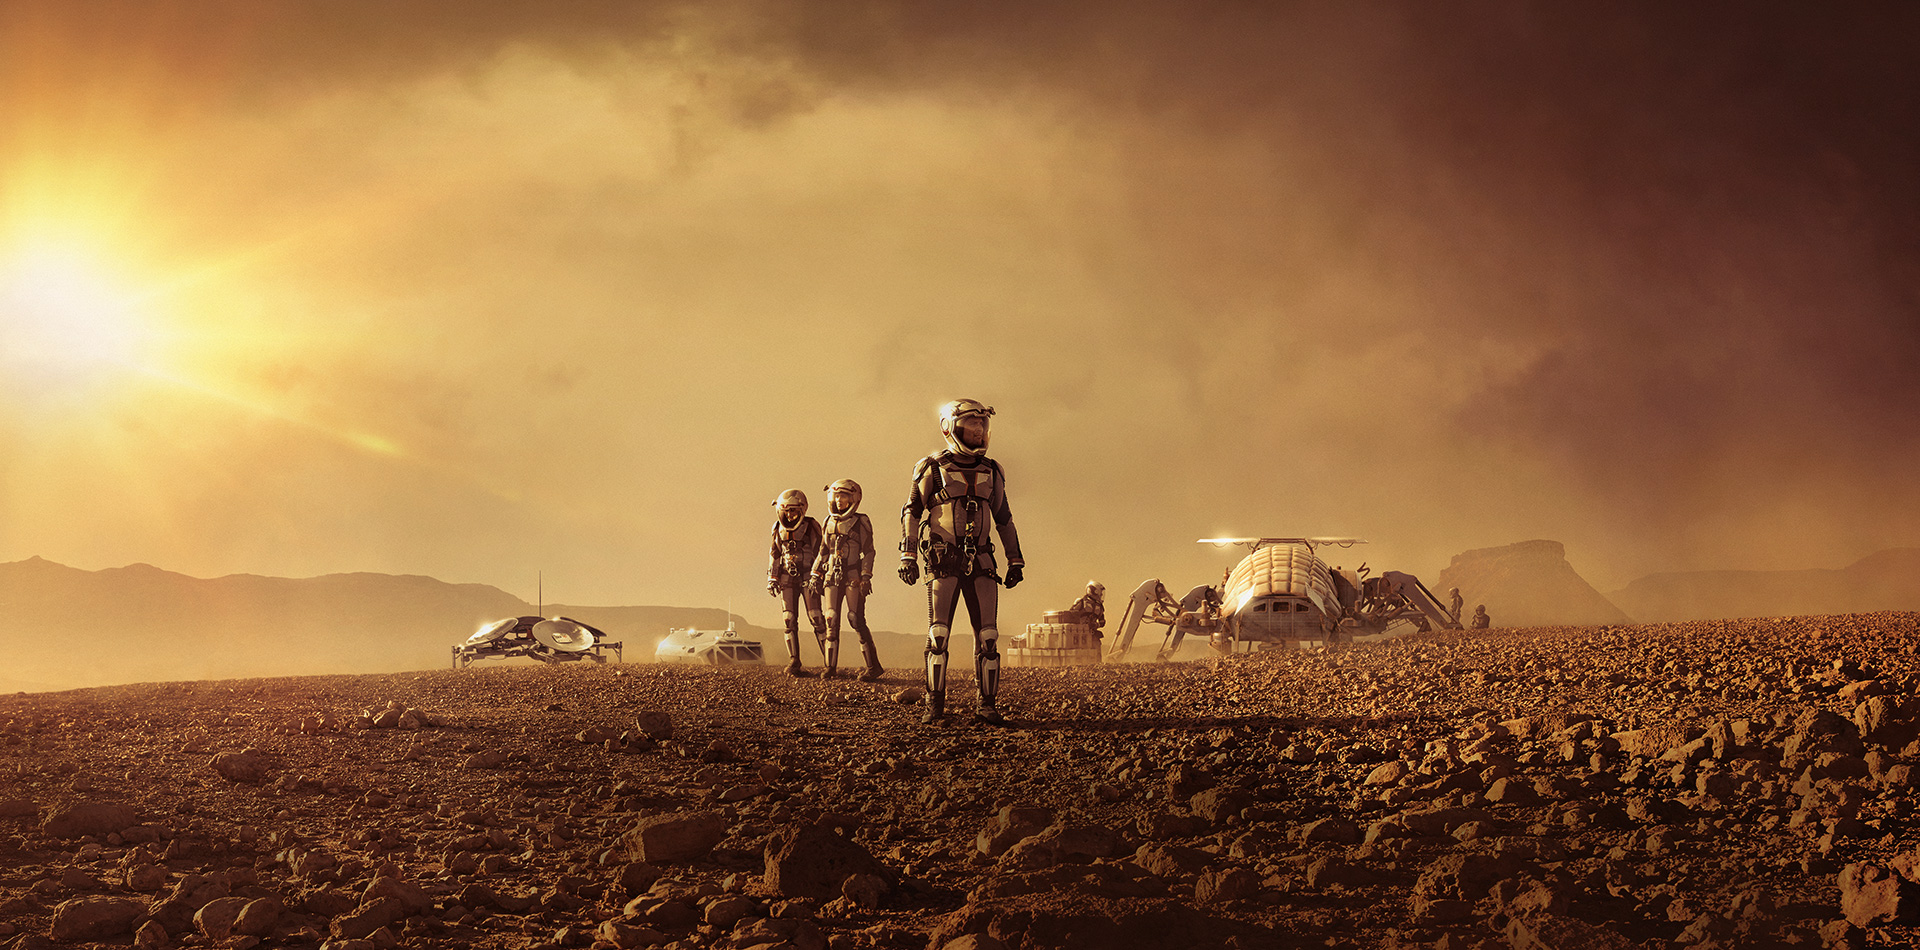 Source: www.experiencemars.com